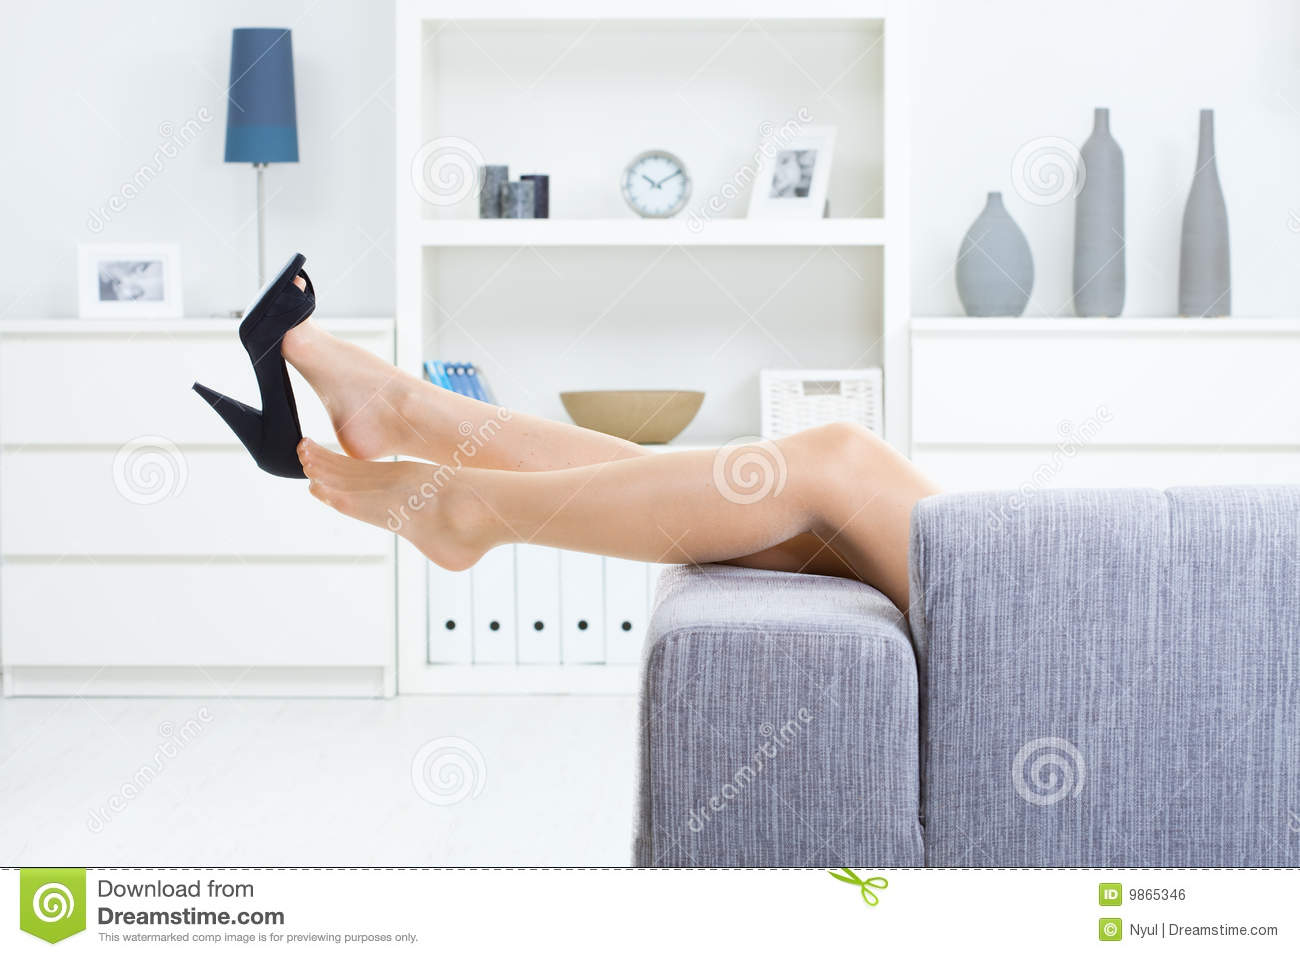 woman taking off shoes stock photos, images, & pictures - 146 images